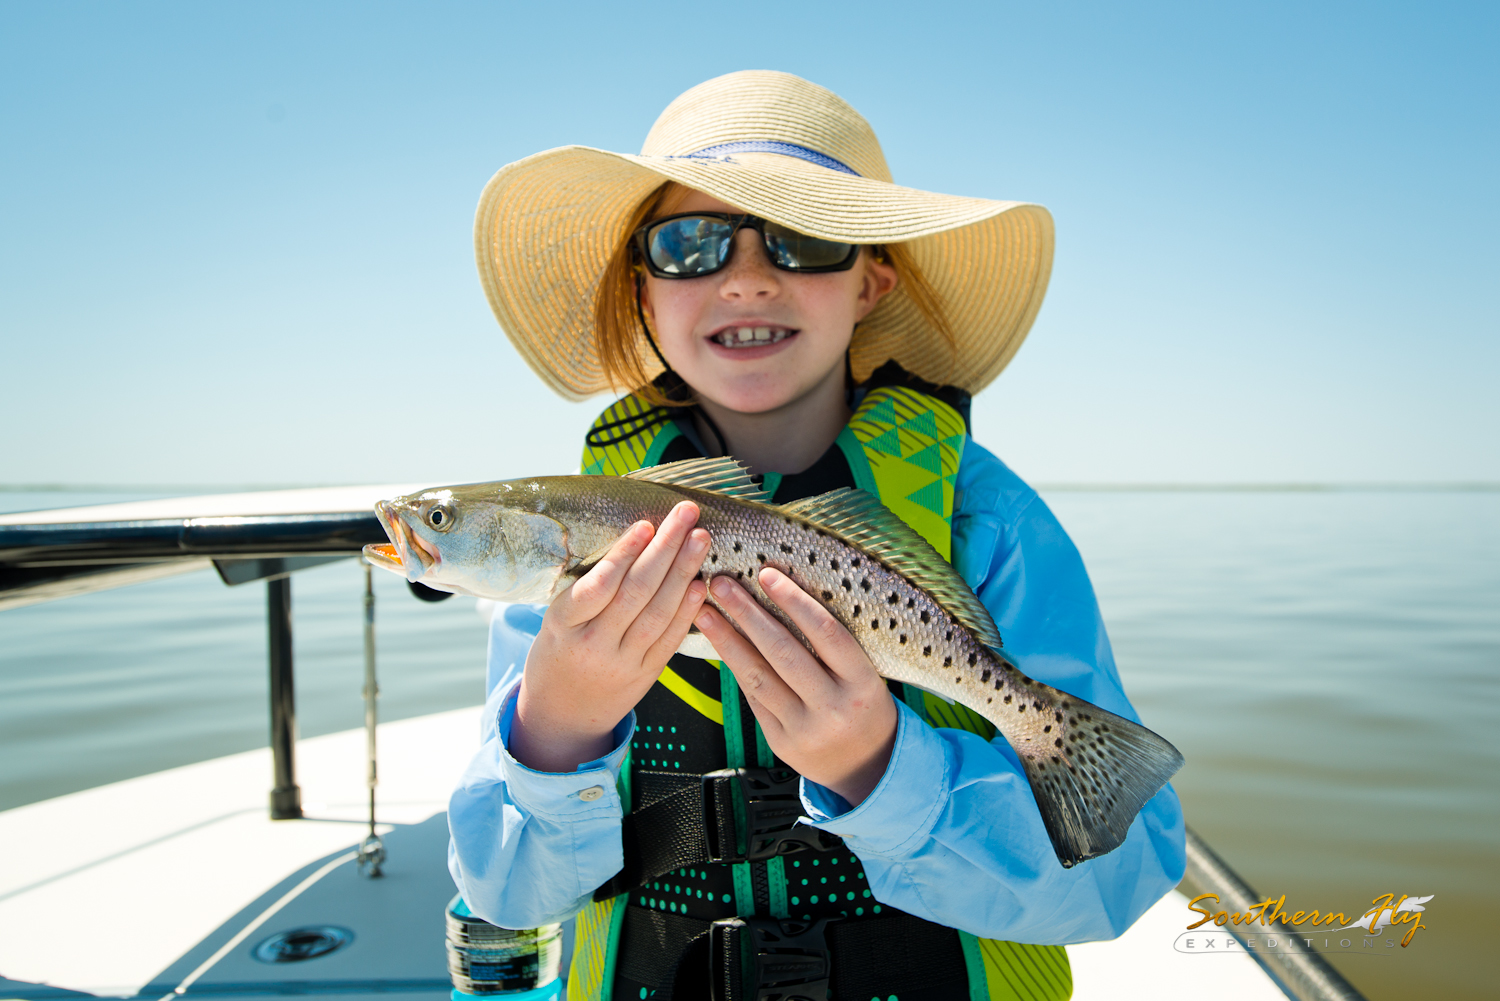 Womens Fly Fishing Trips New Orleans by Southern Fly Expeditions of New Orleans Fishing